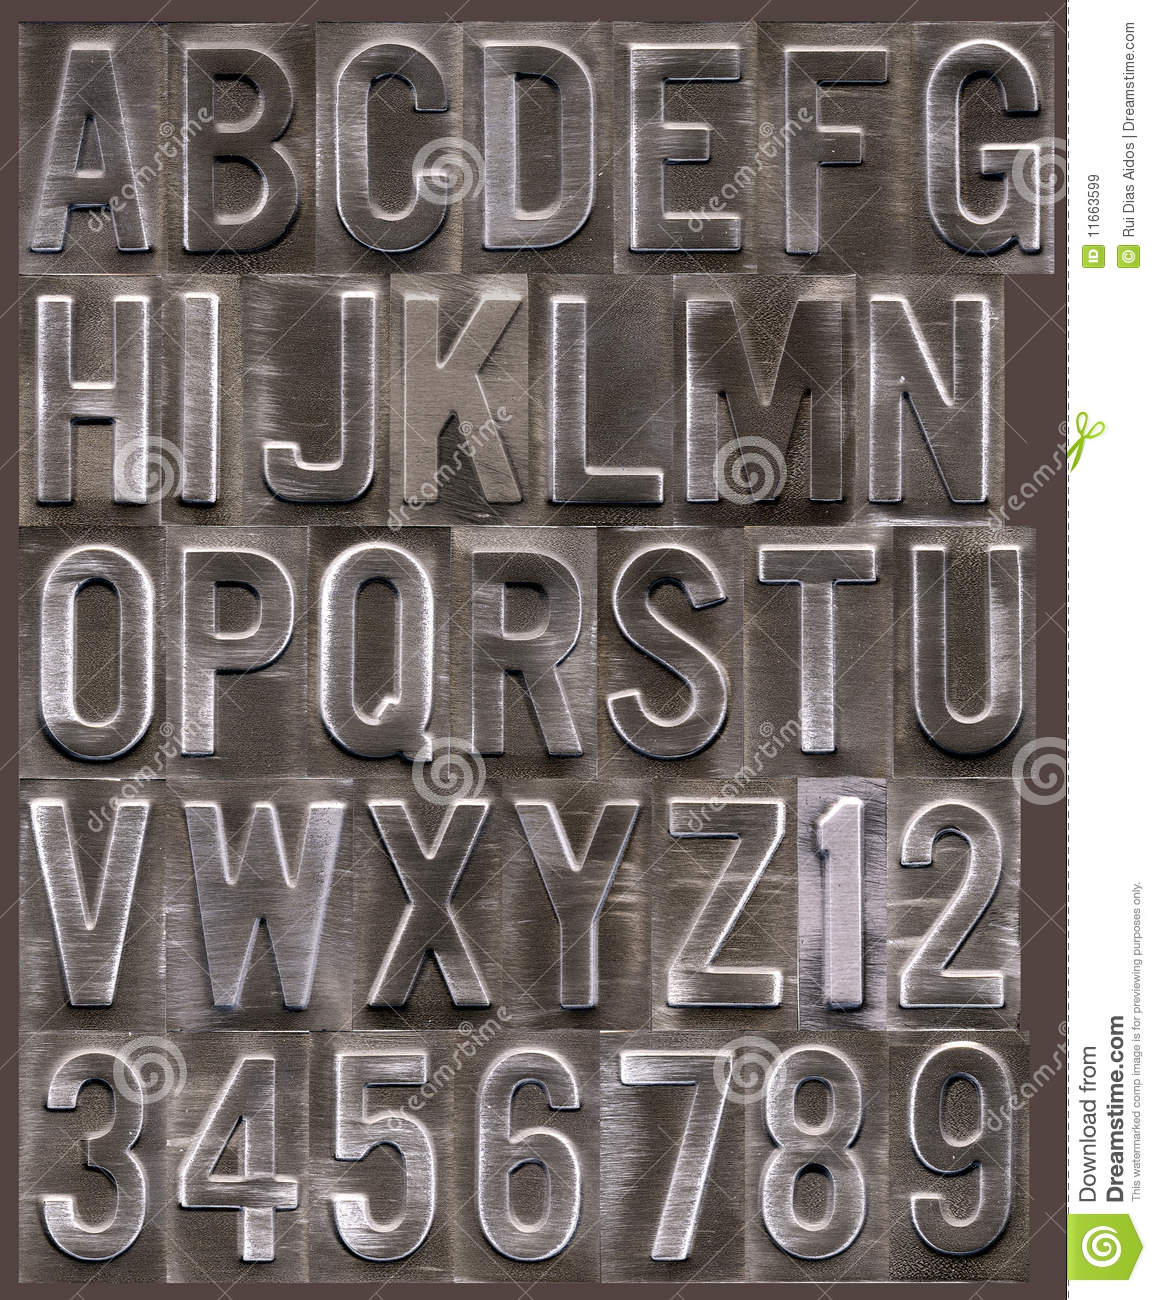 Brushed metal raised alphabet royalty free stock images for Raised metal letters